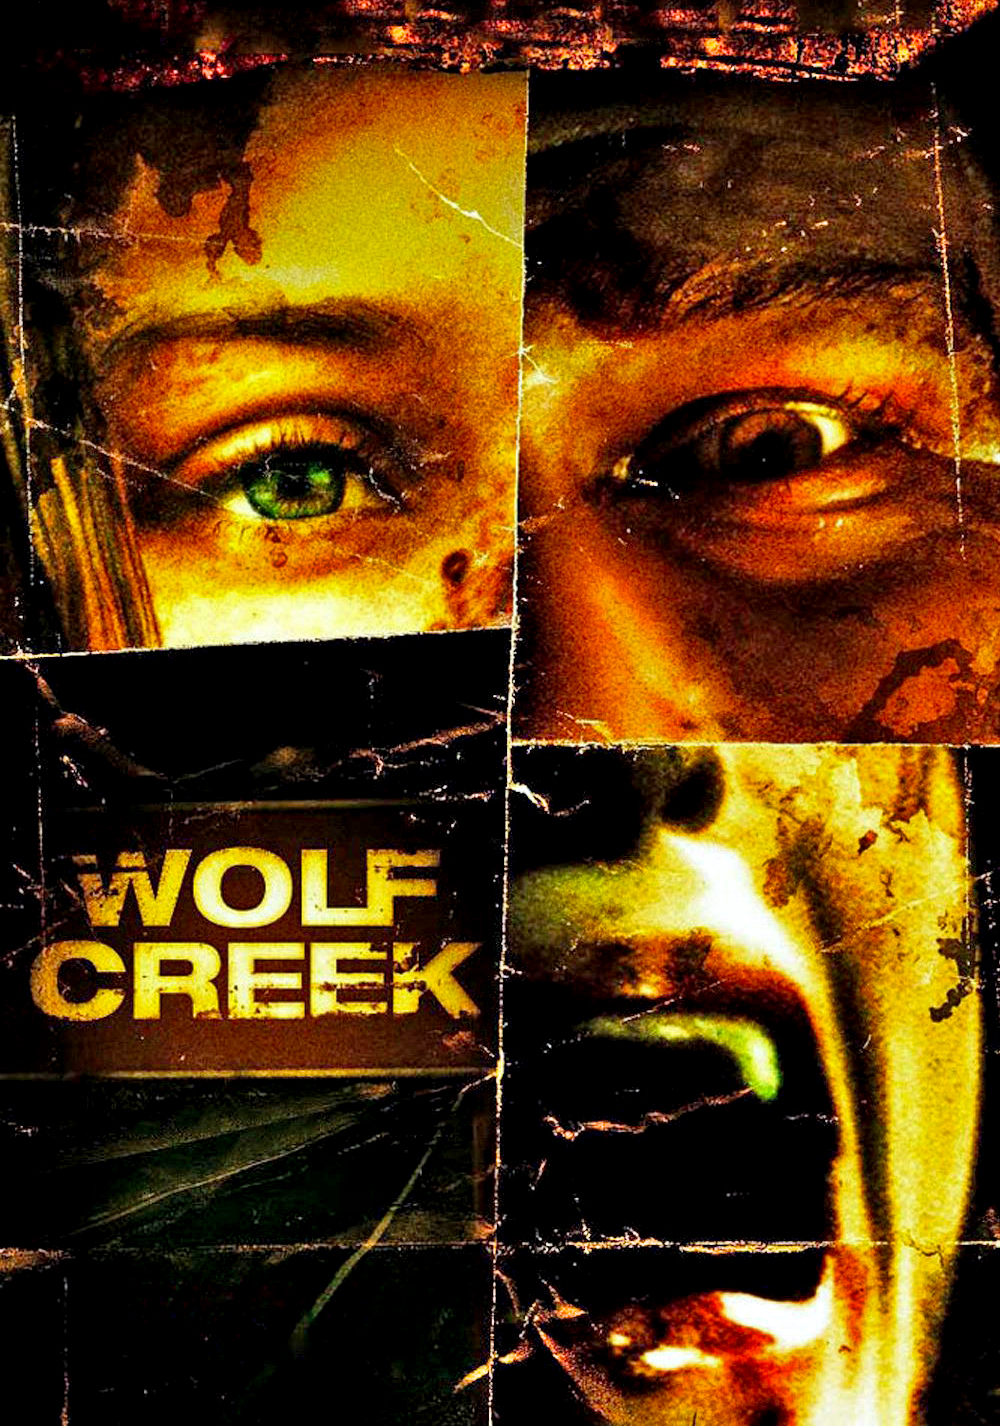 WOLF CREEK (2005) MOVIE TAMIL DUBBED HD